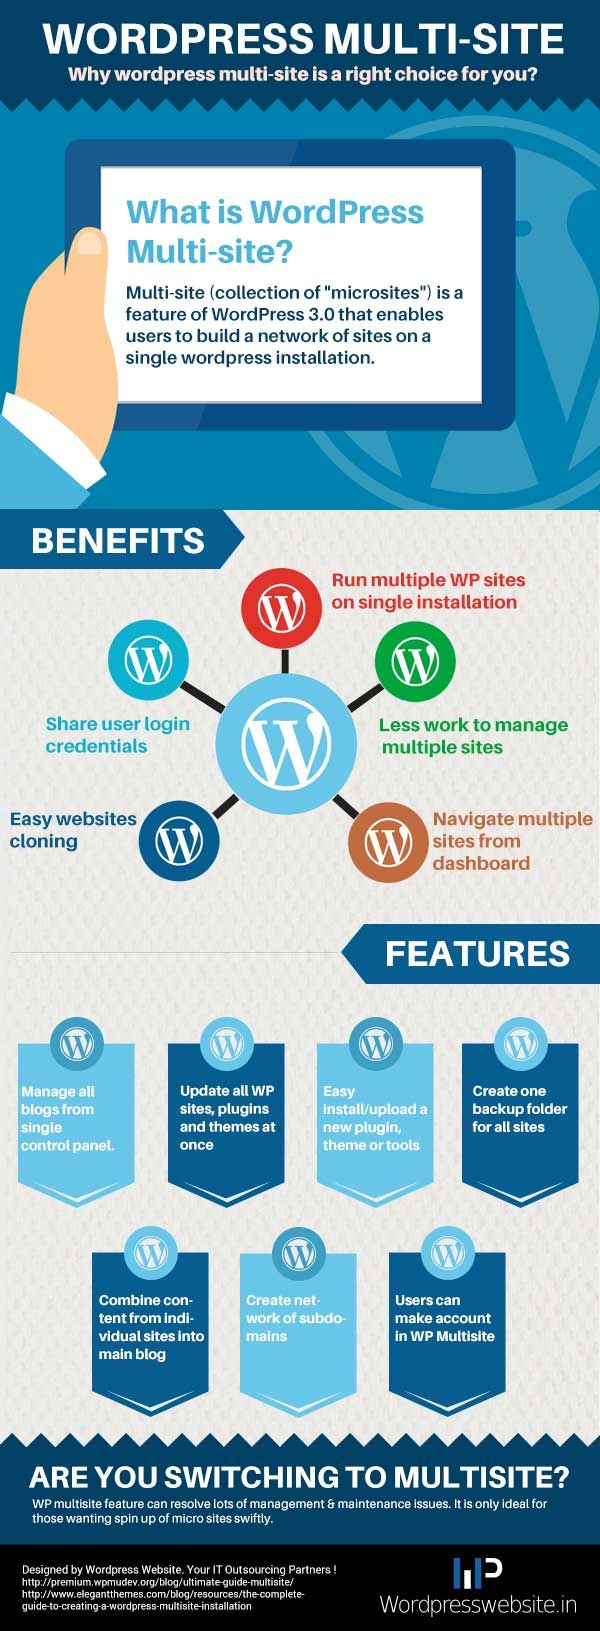 WordPress_Multisite: Multiply your websites, not the hassle